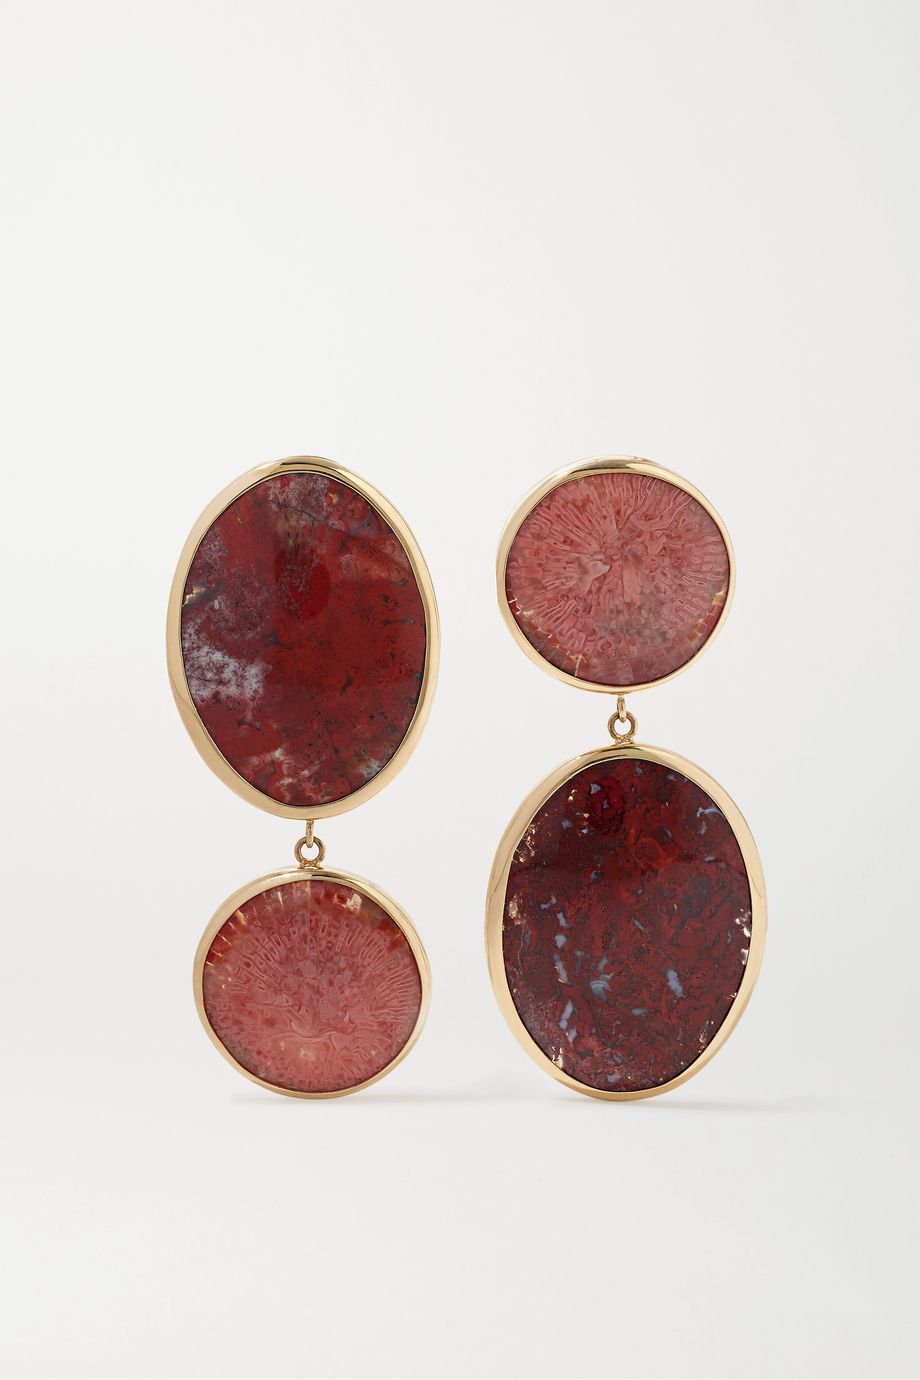 Melissa Joy Manning + NET SUSTAIN 14-karat gold and sterling silver, coral and jasper earrings